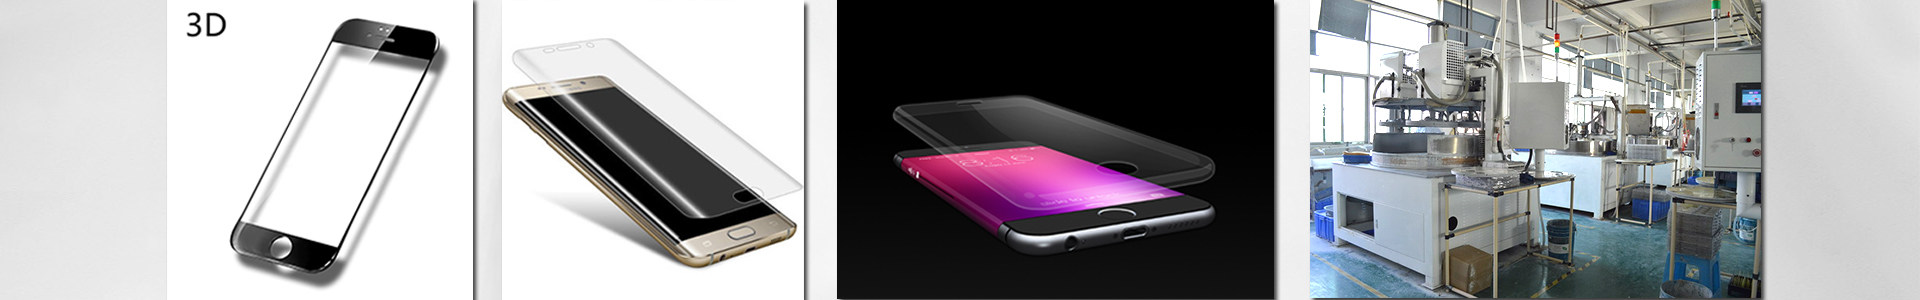 2.5D mobile glass & 3D curved glass